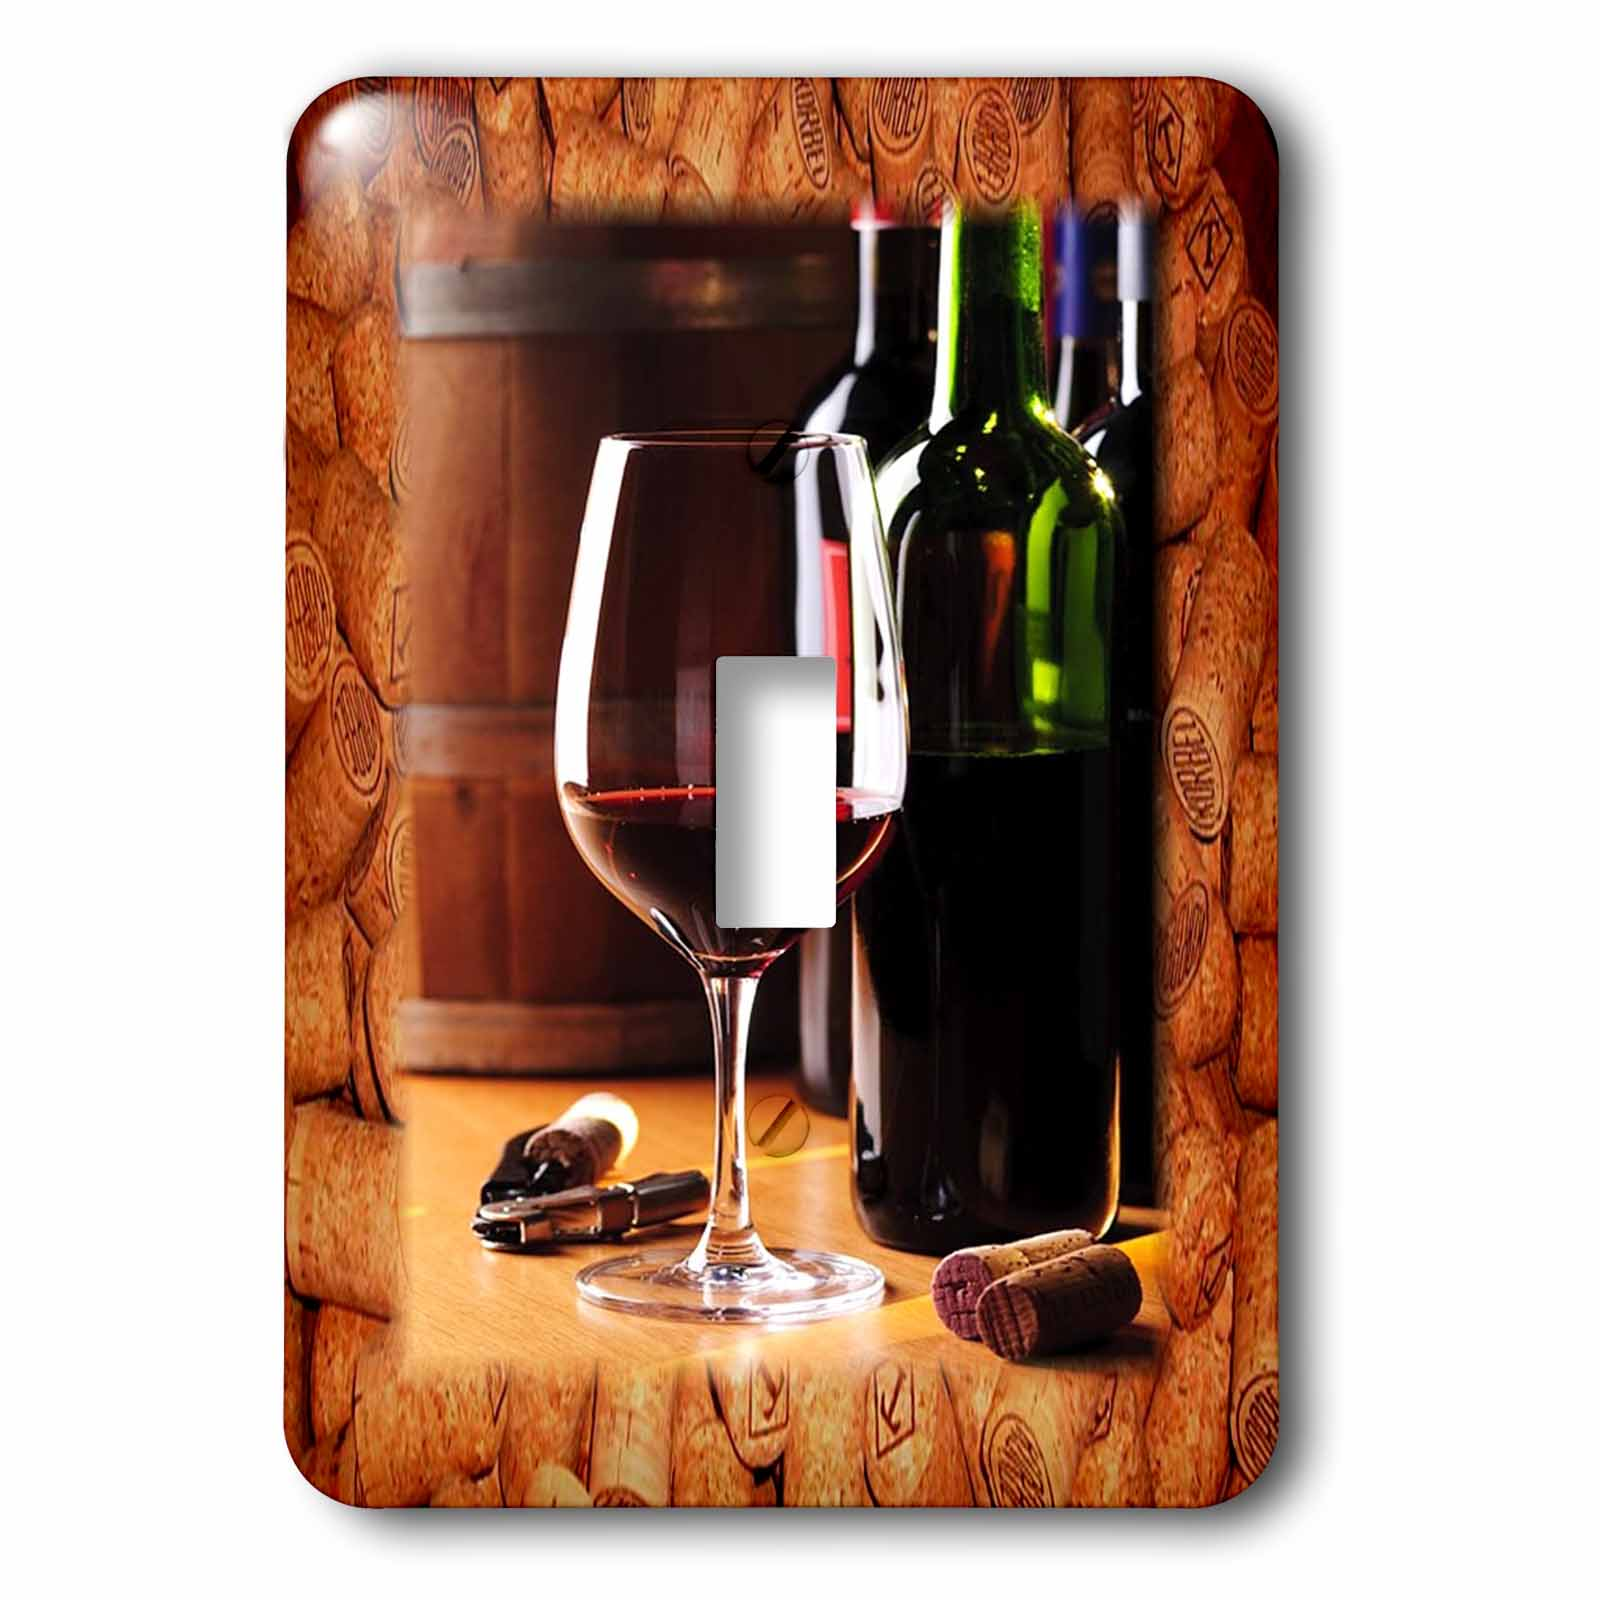 3dRose Share Some Wine With Me, 2 Plug Outlet Cover